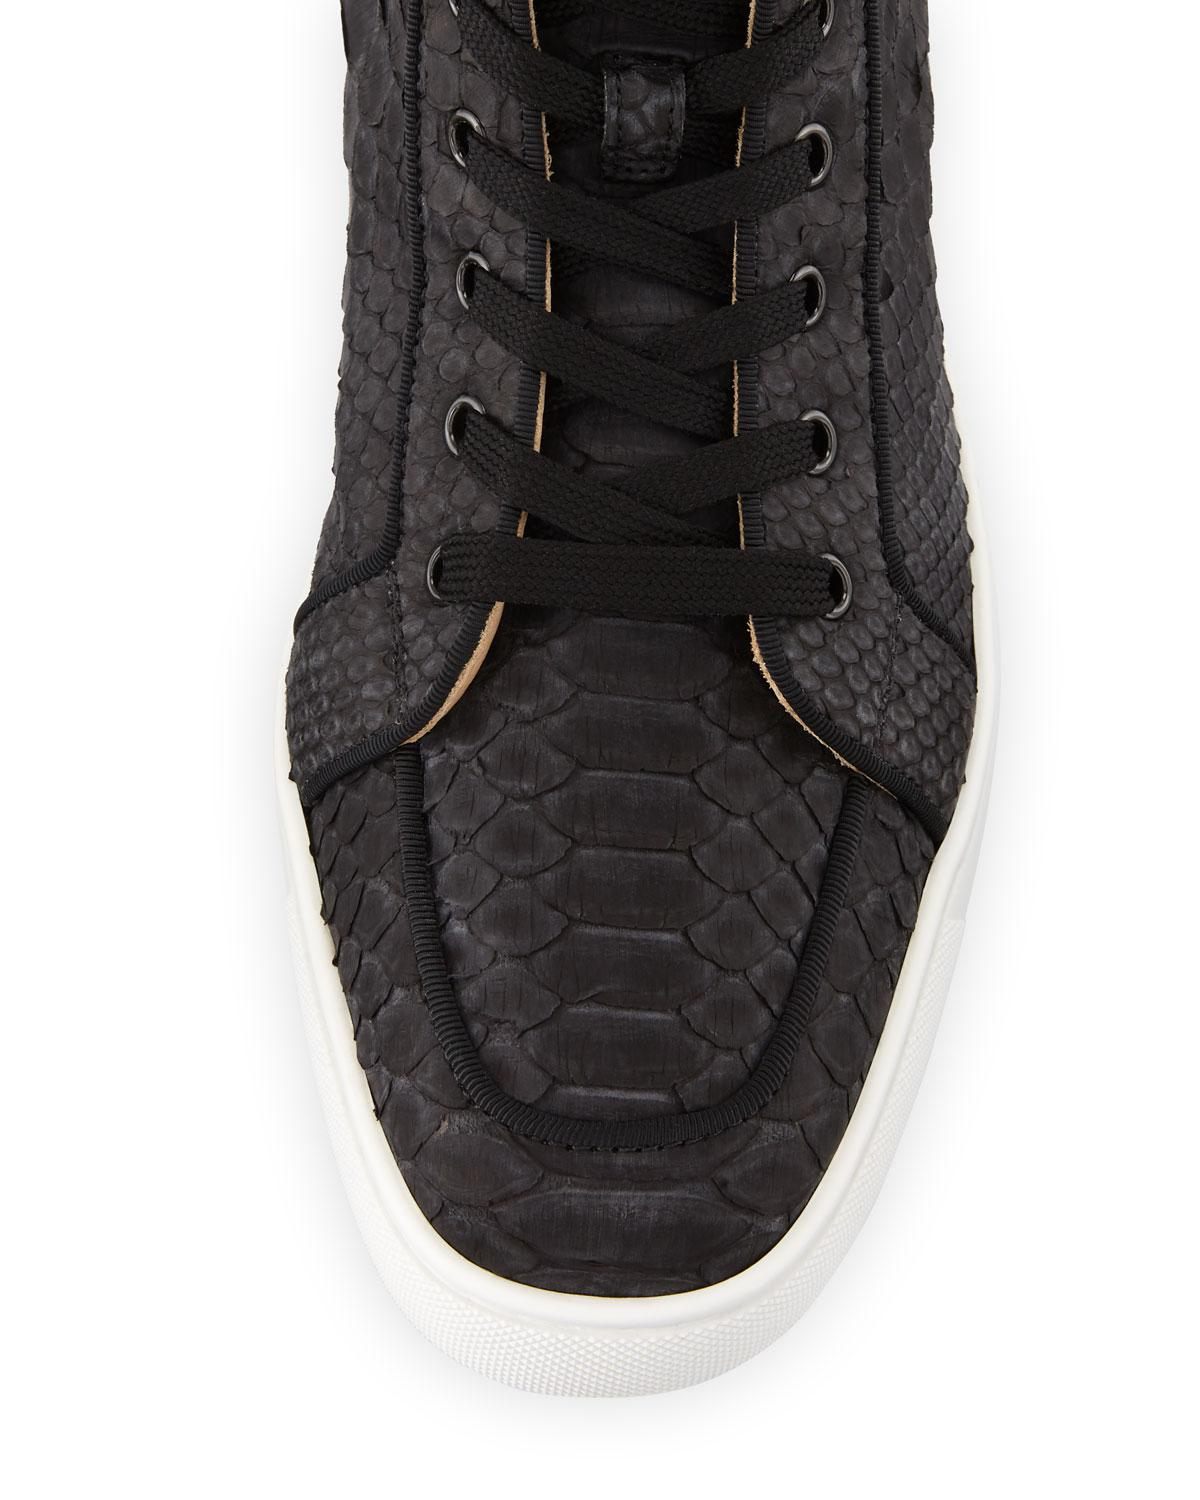 reputable site ccf37 d5677 Black Men's Rantus Python High-top Sneakers